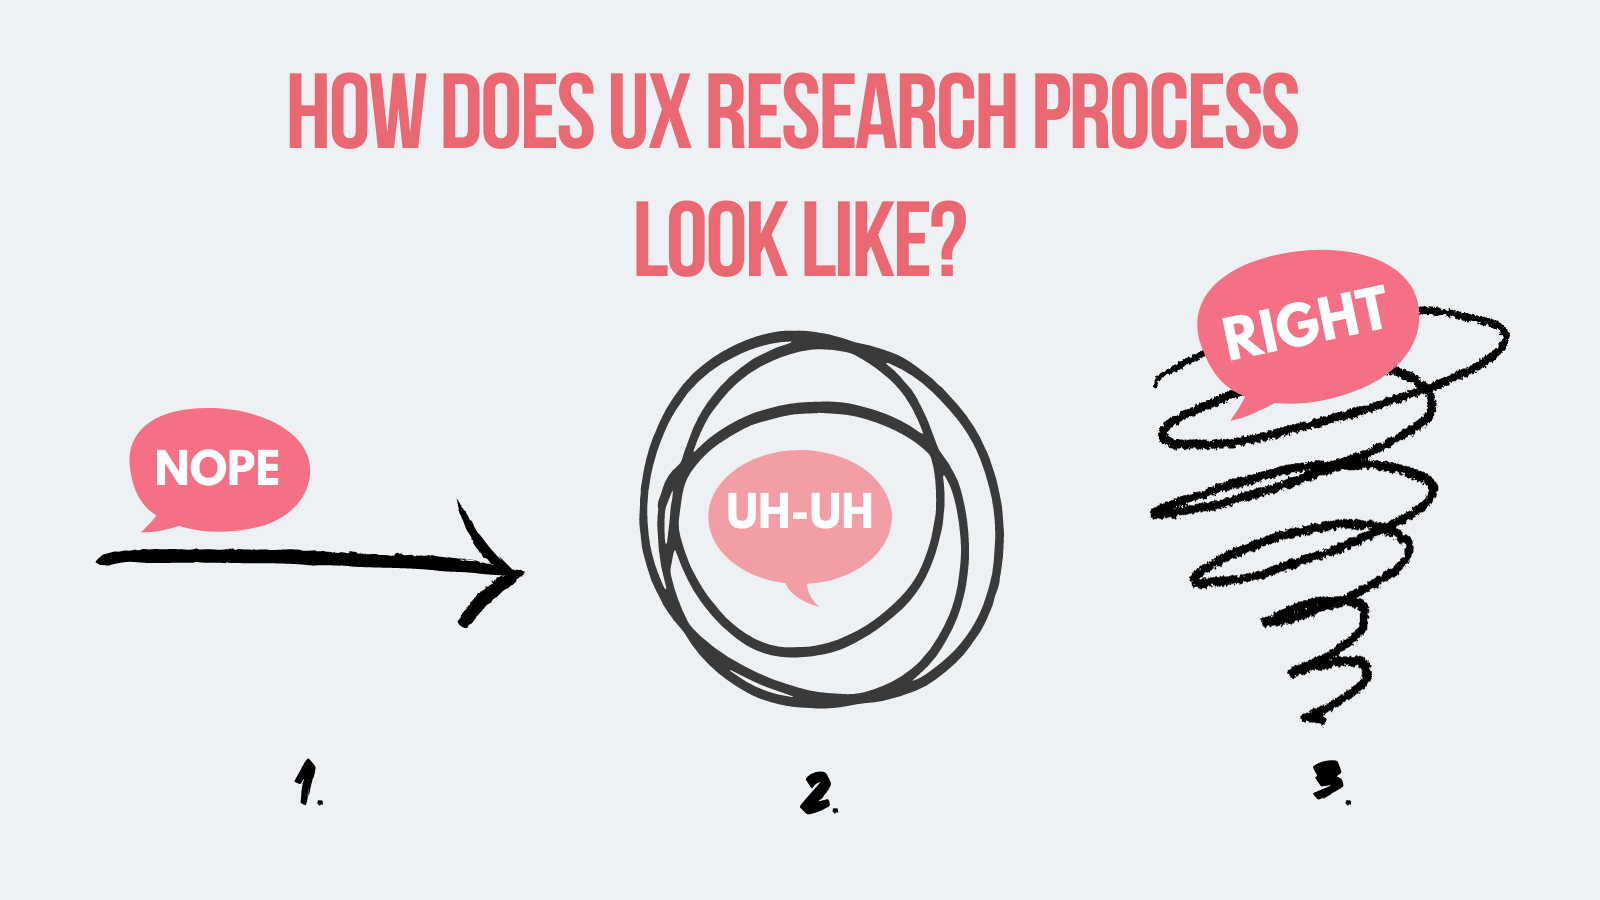 how does ux research process look like